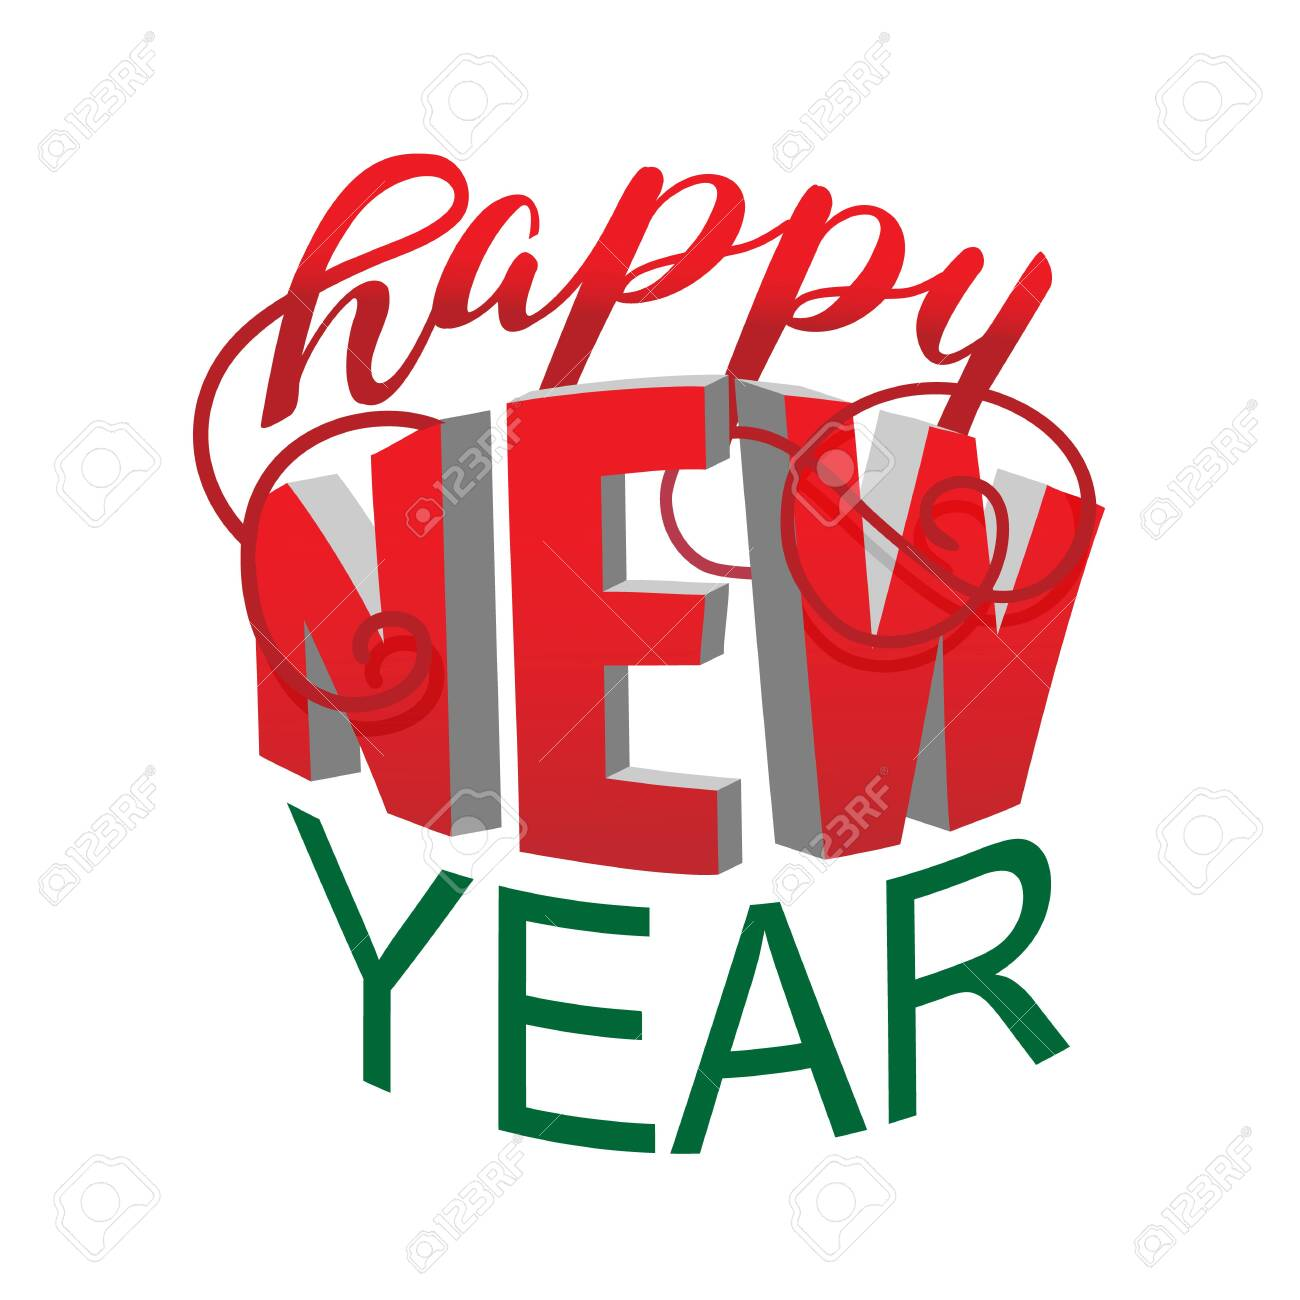 happy new year red and green creative lettering on white royalty free cliparts vectors and stock illustration image 122489434 happy new year red and green creative lettering on white